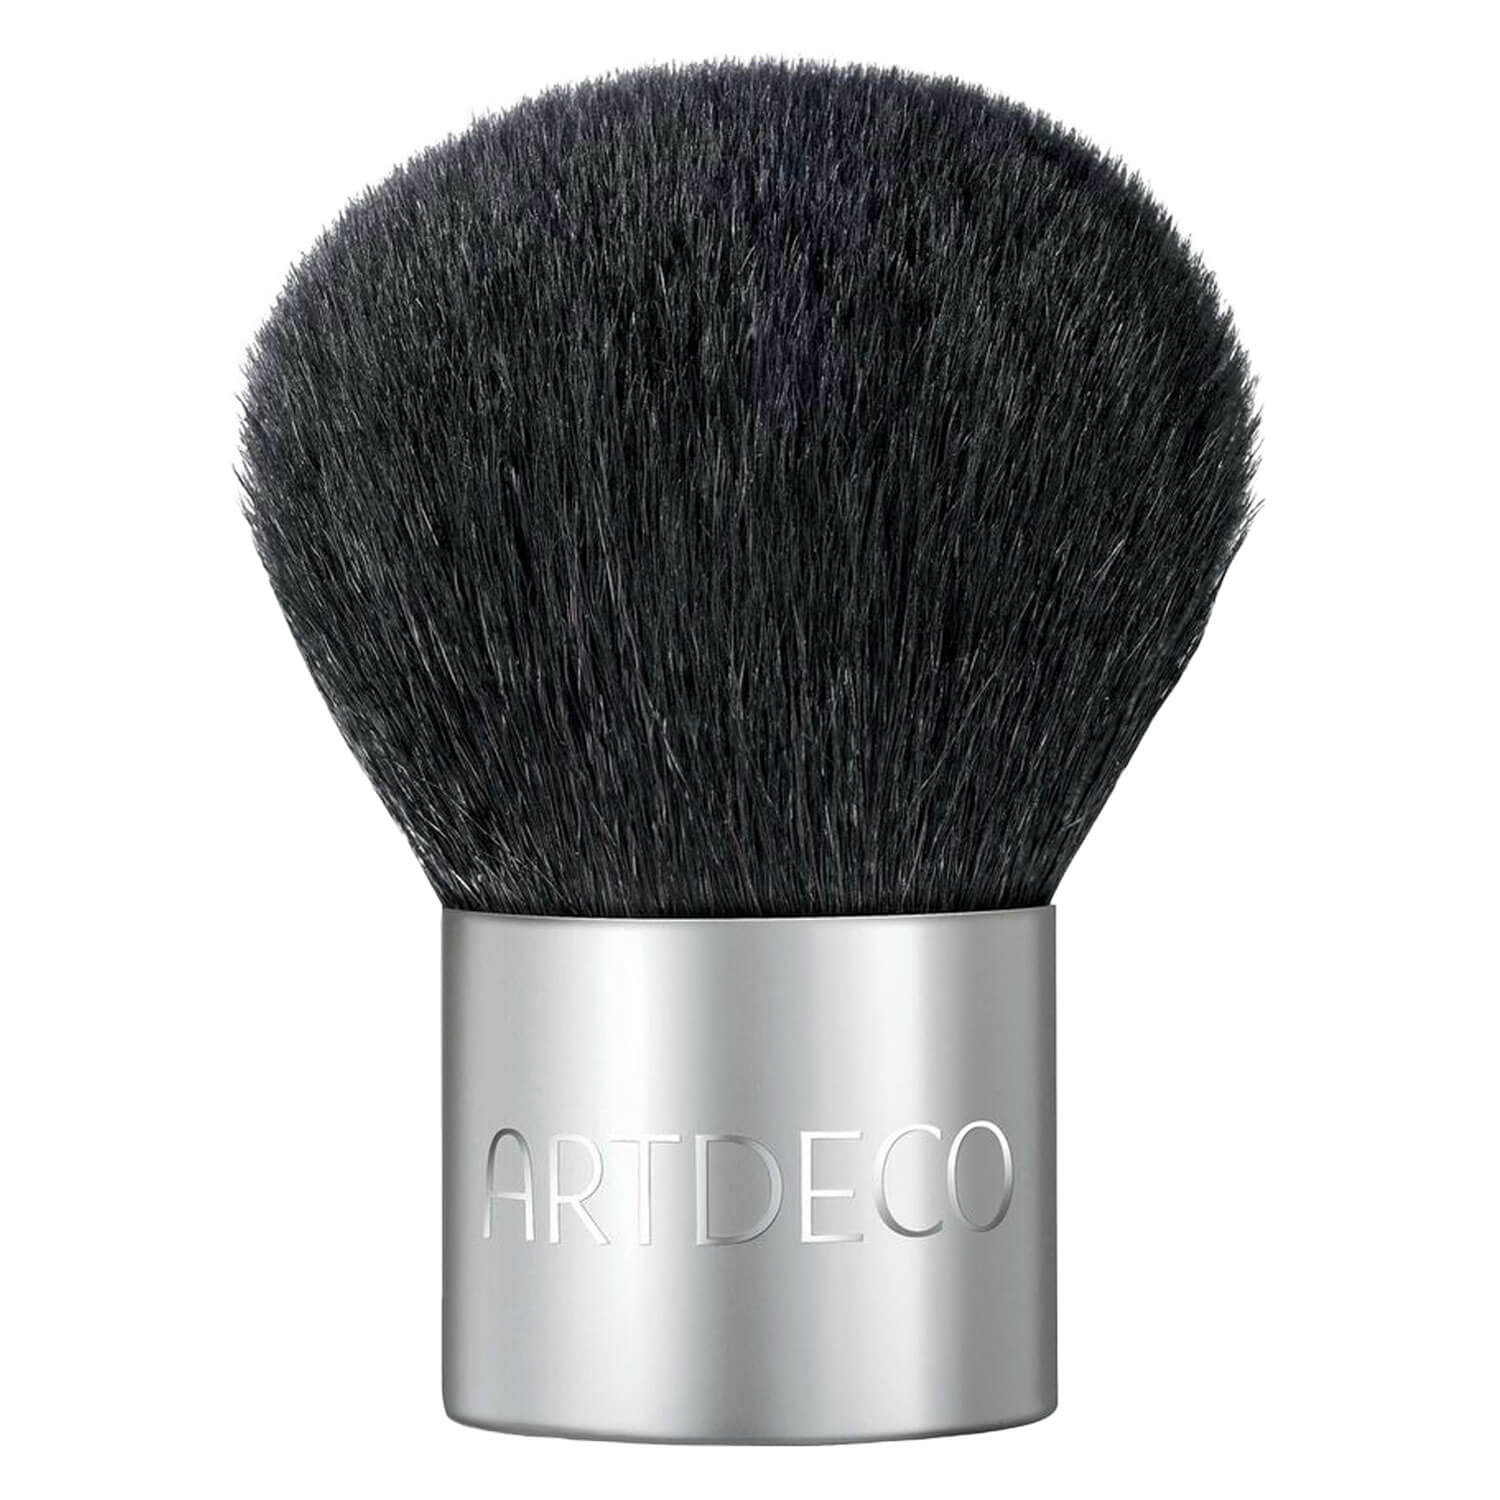 Artdeco Tools - Kabuki Brush for Mineral Powder Foundation